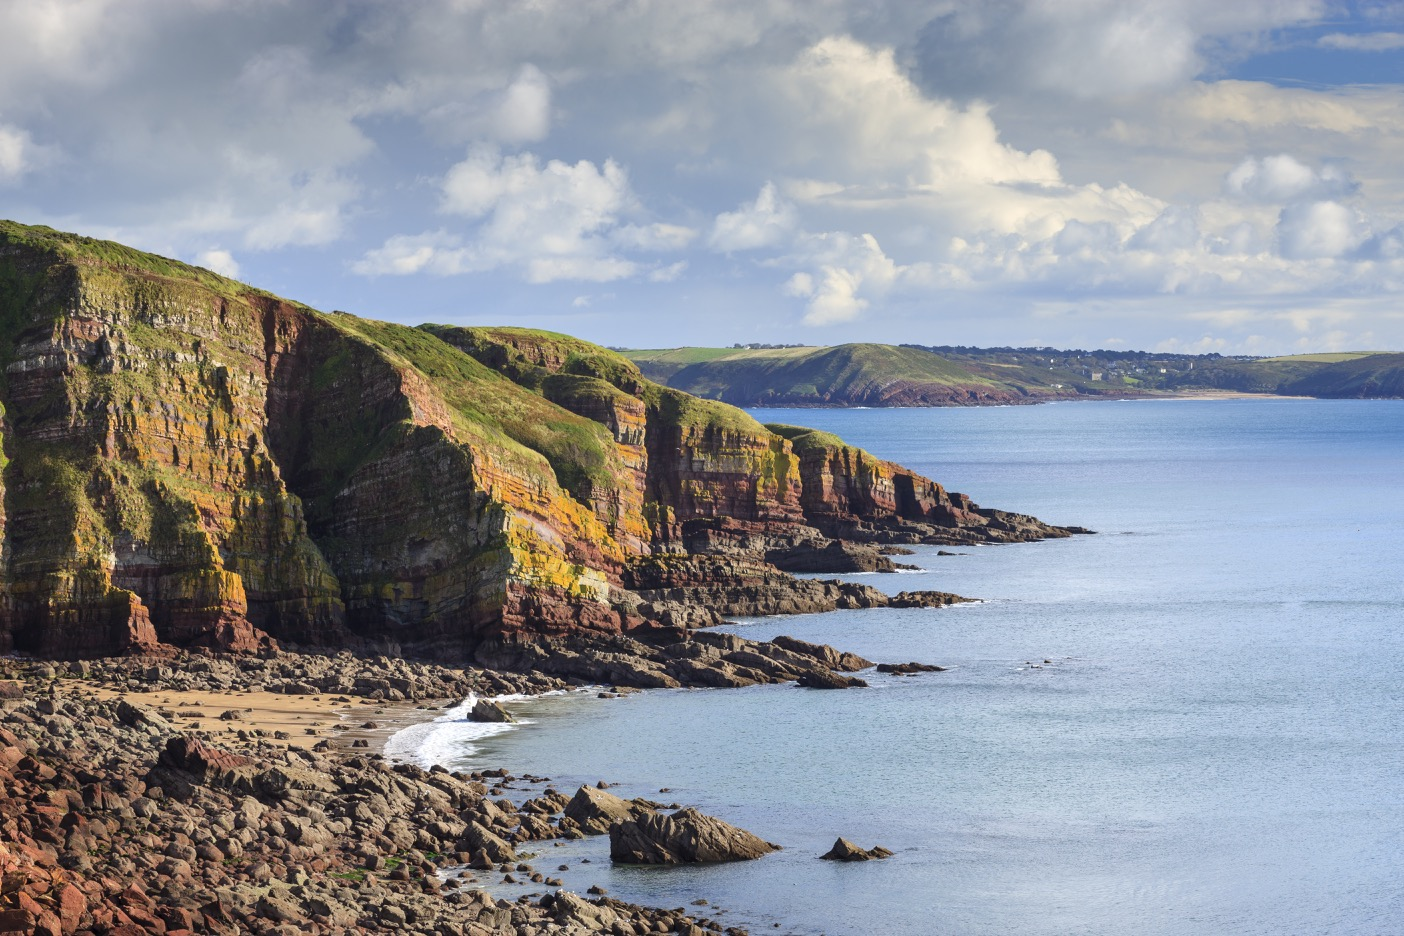 Looking towards Grernala Point near Stackpole